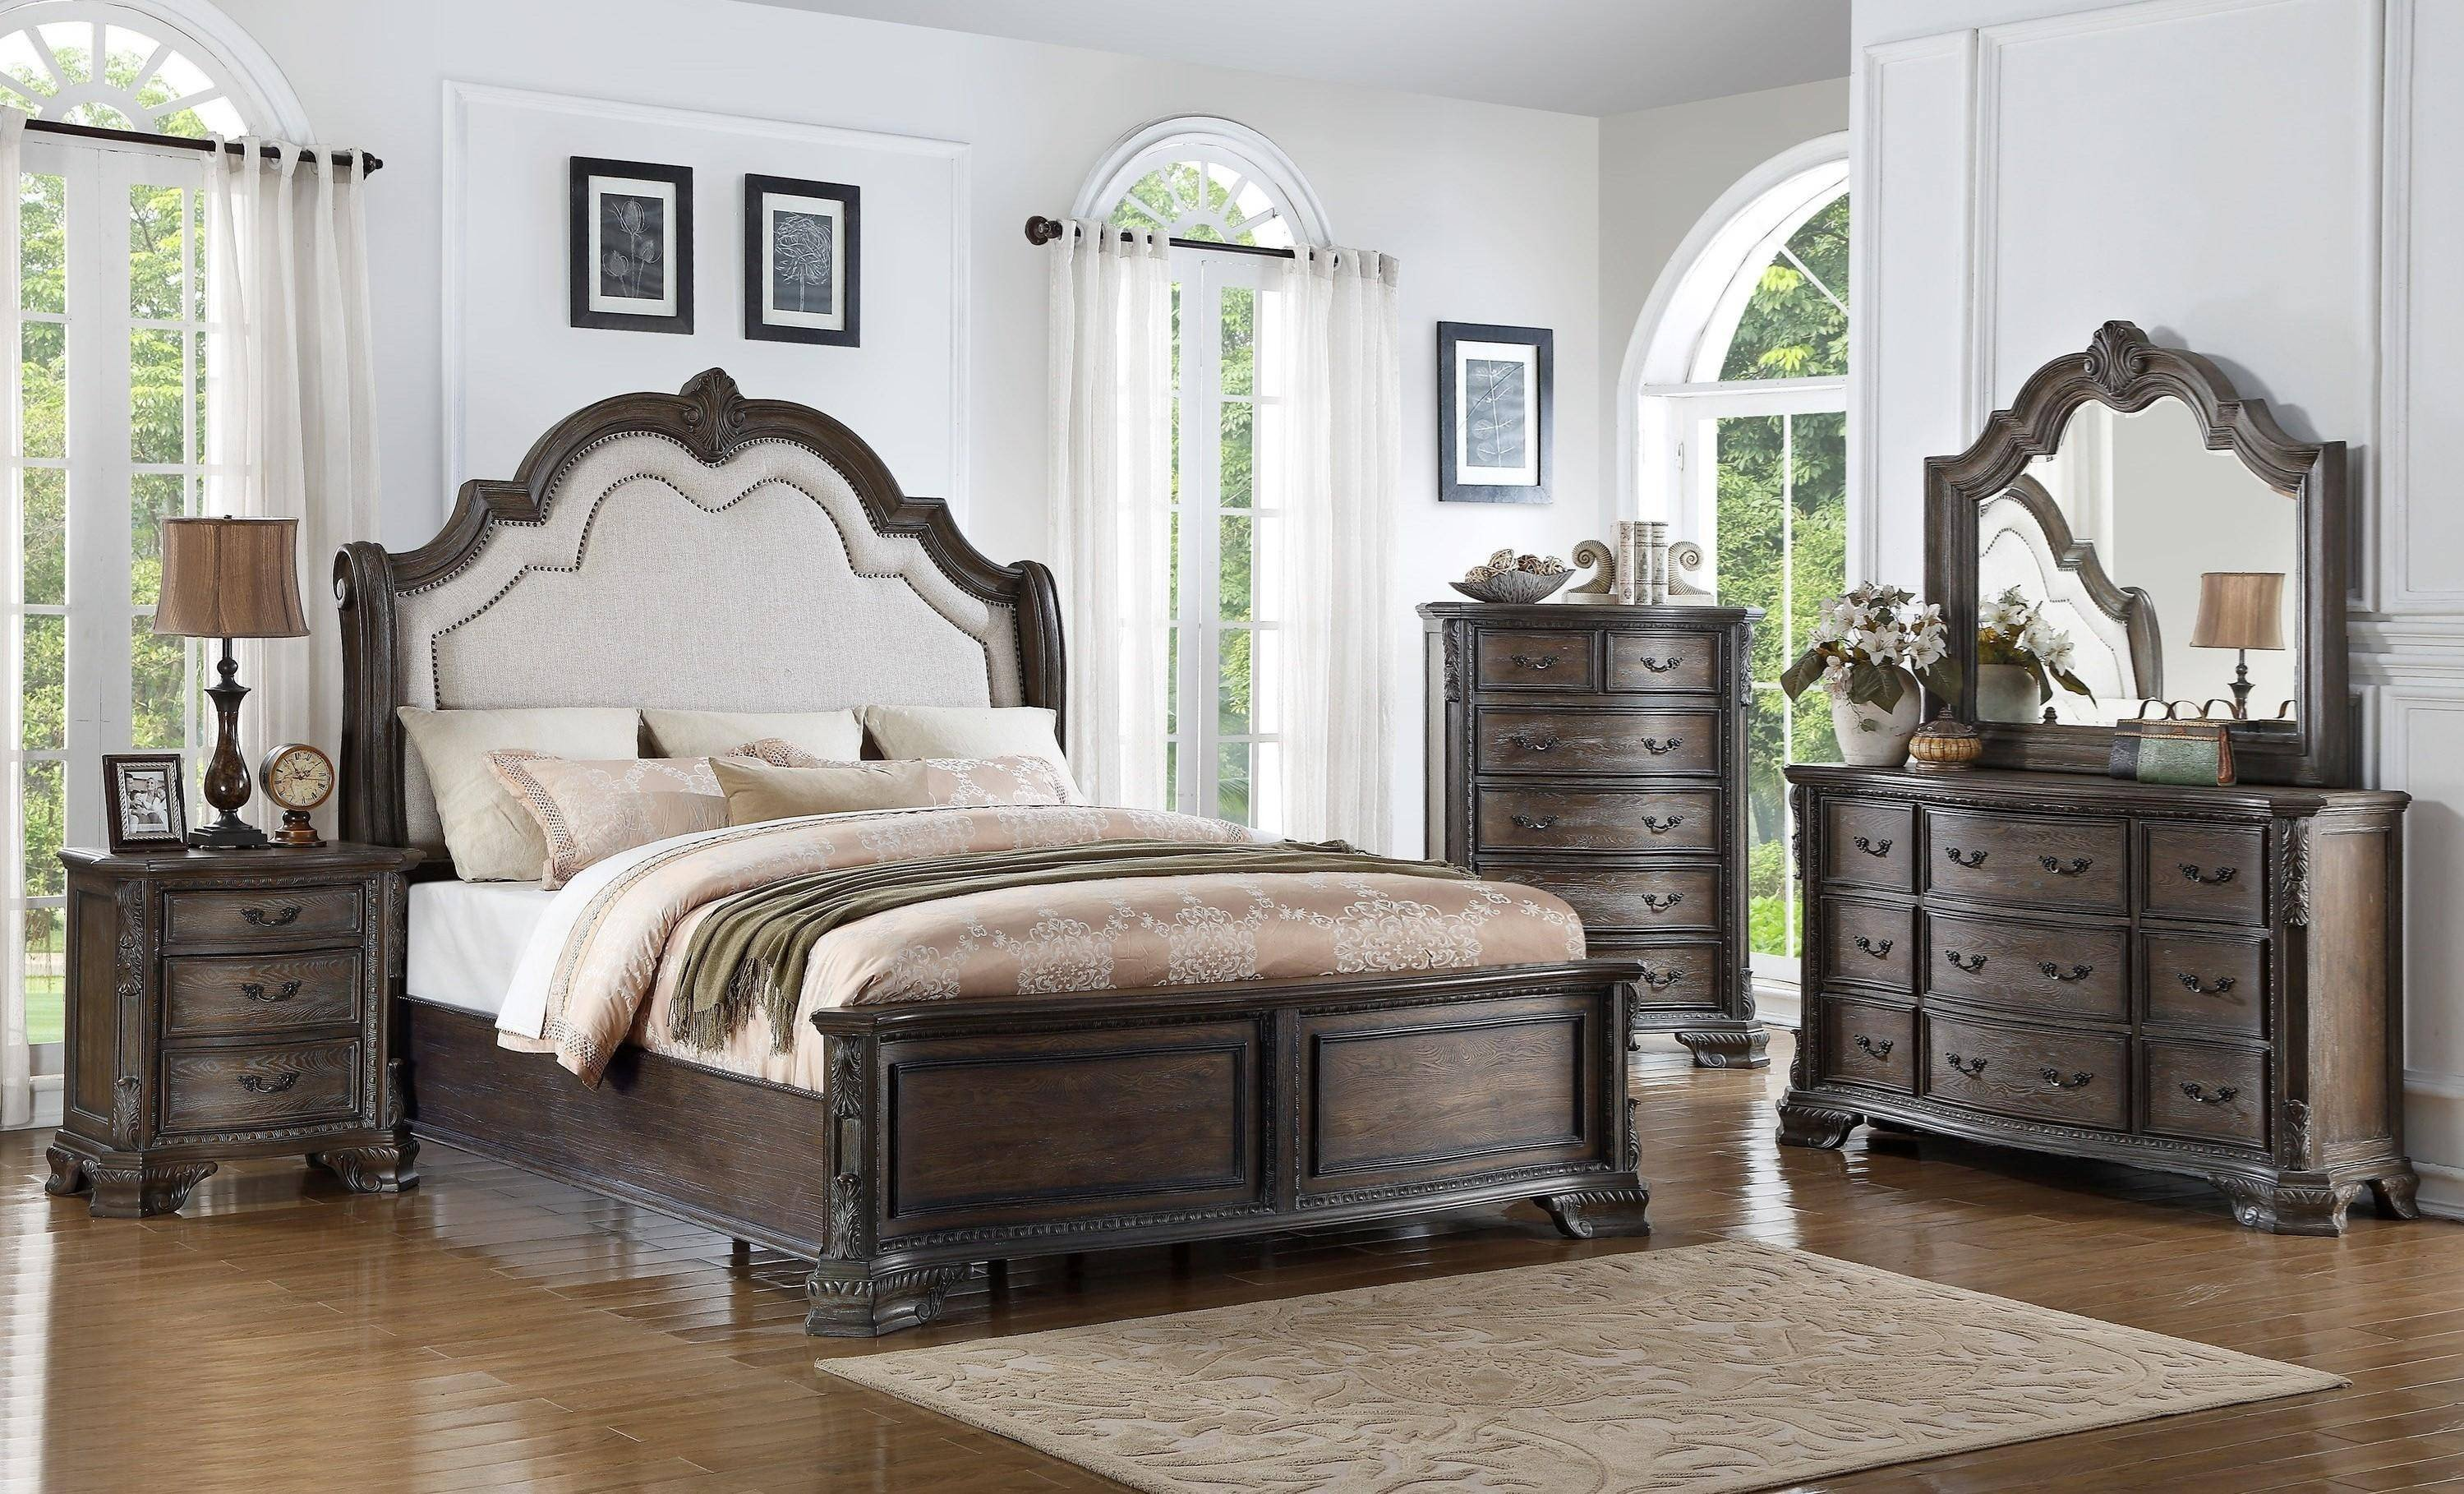 Bedroom Furniture Set King Fresh Crown Mark B1120 Sheffield Queen Panel Bed In Gray Fabric